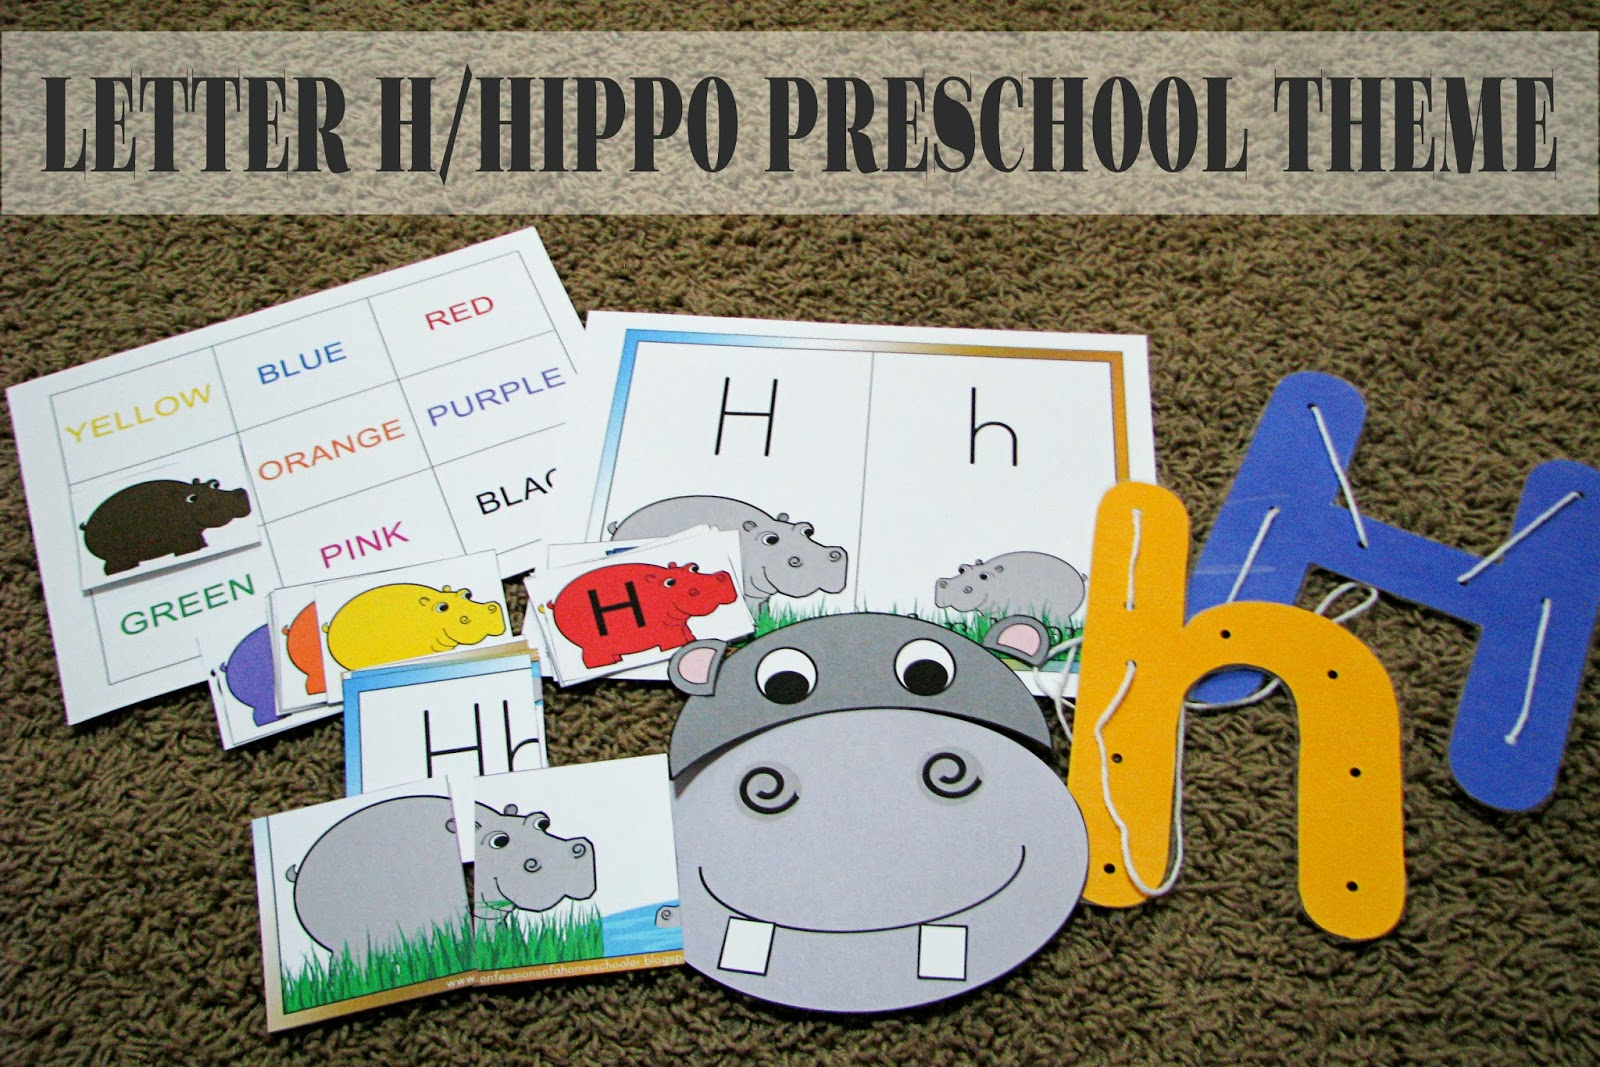 Mommy S Little Helper Letter H Hippo Preschool Theme